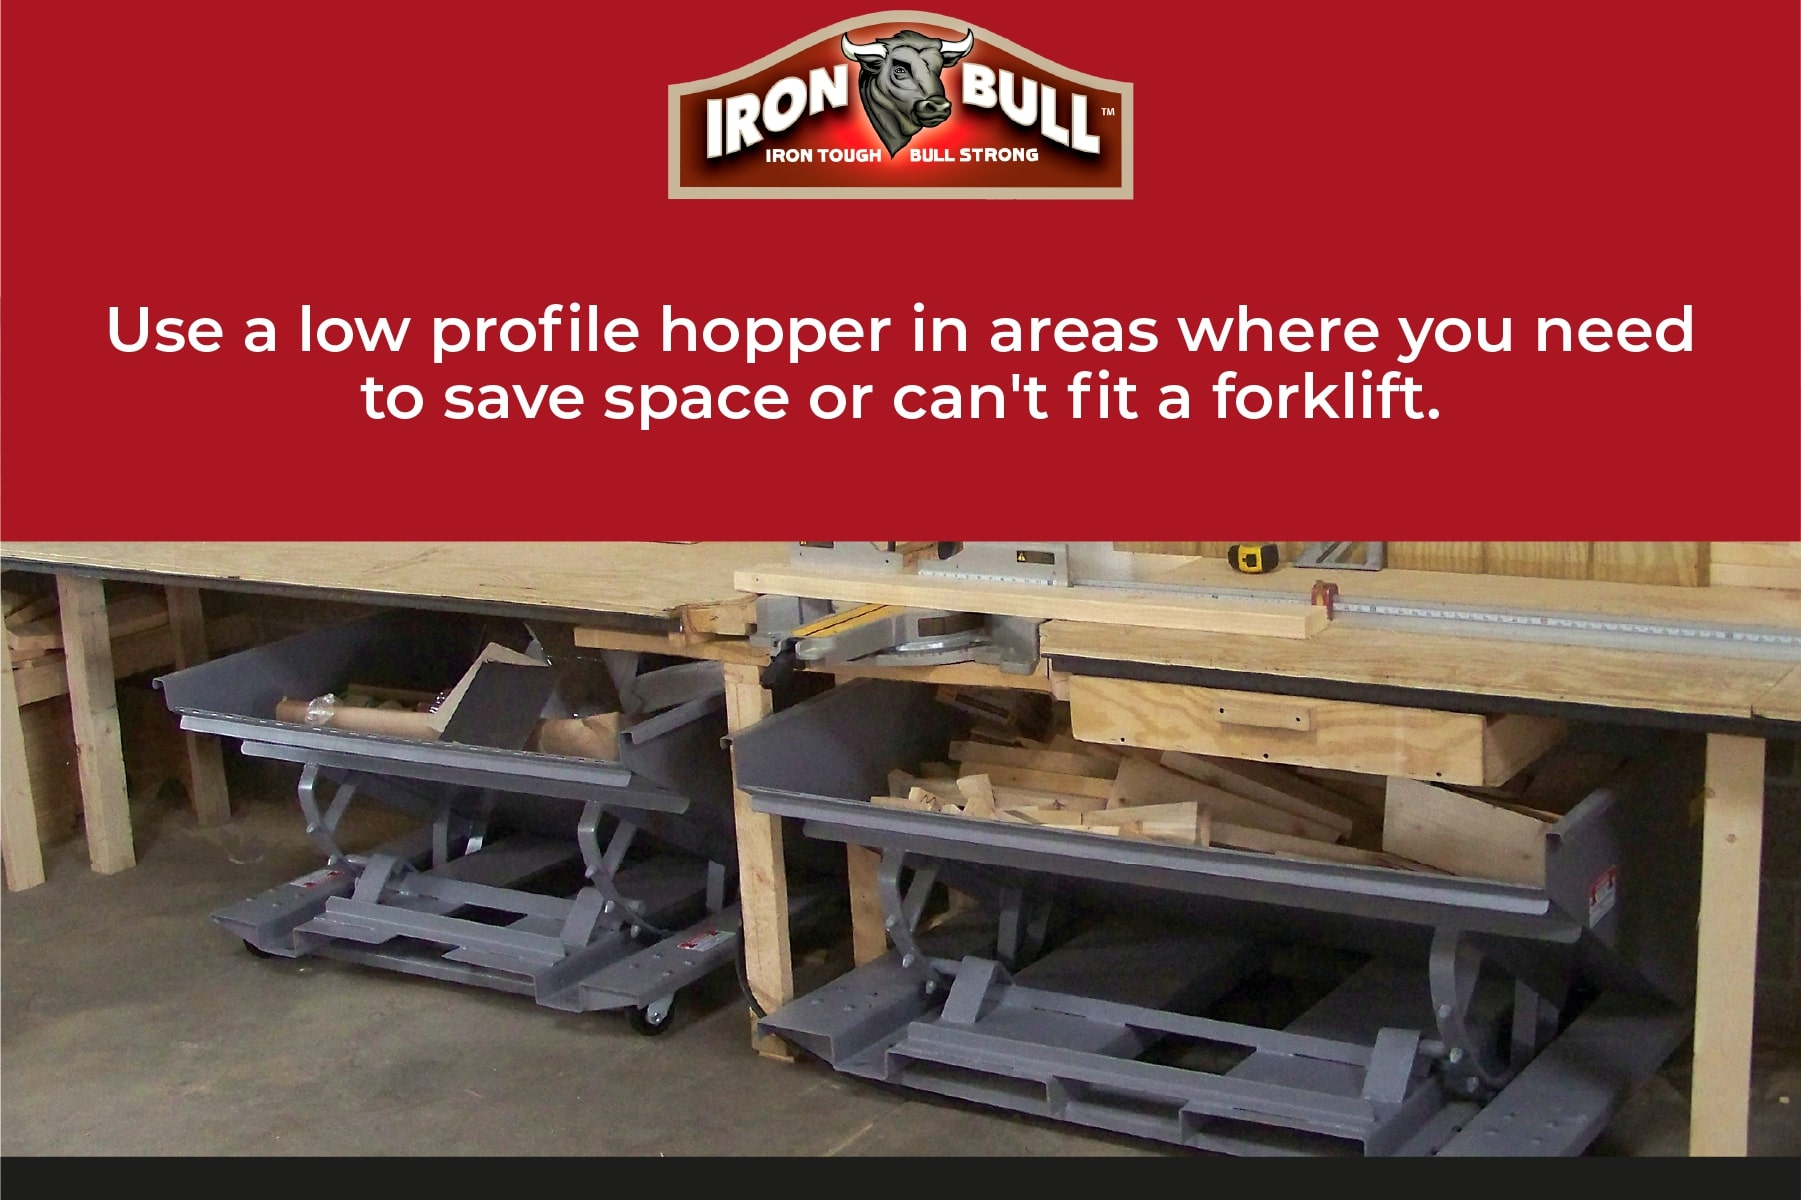 low profile hoppers fit in small spaces